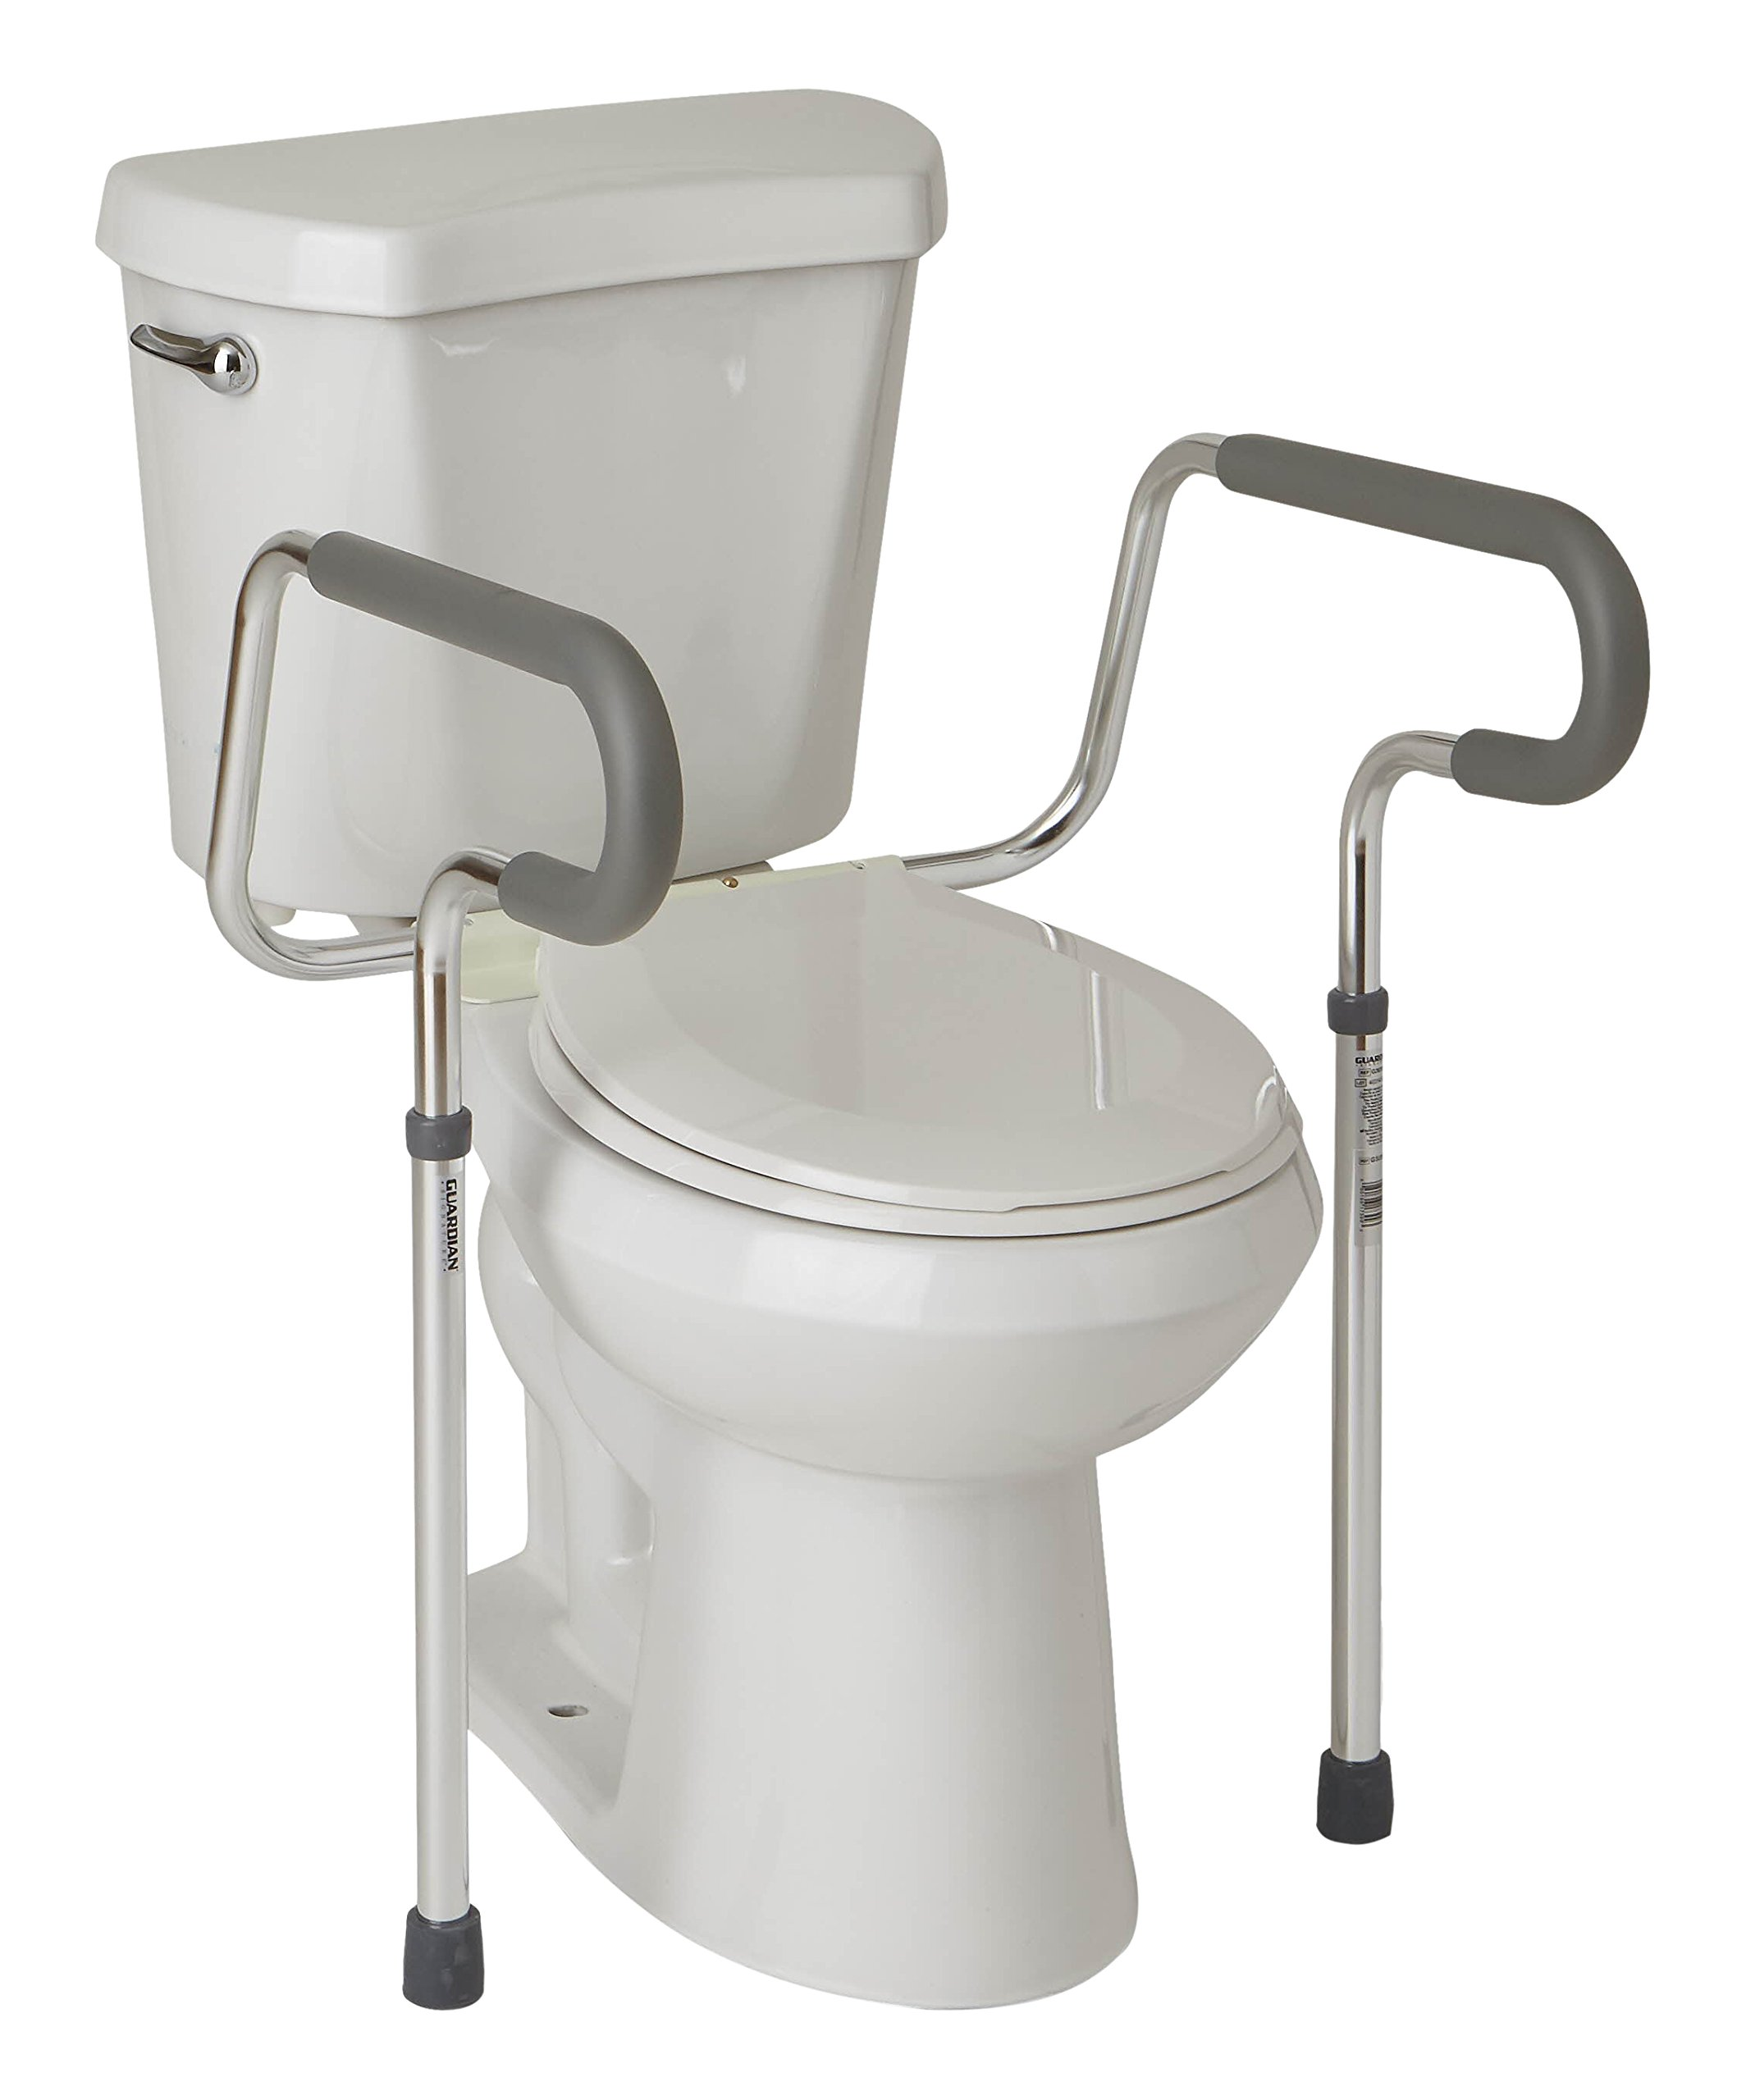 Medline's Guardian Toilet Safety Rail with Adjustable Height for Bathroom Safety, Toilet Assist, and Grab Bar by Medline